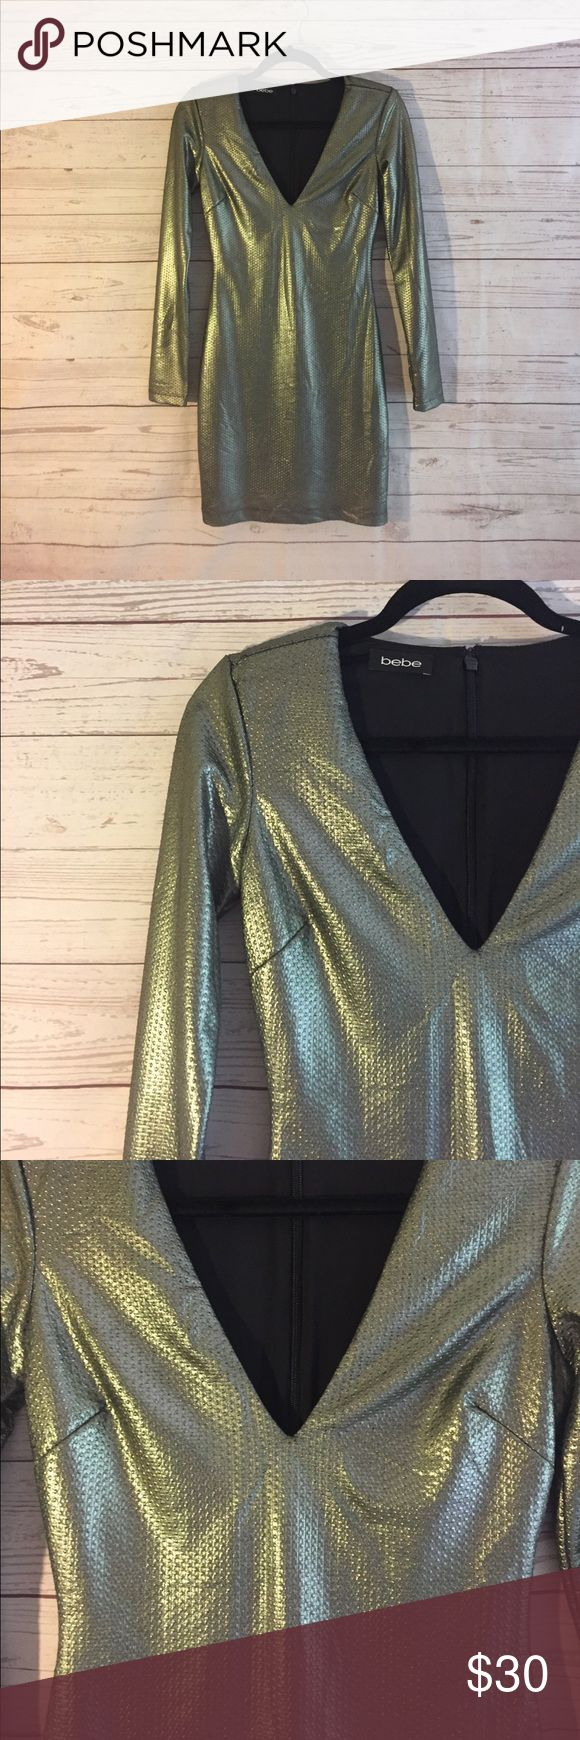 Metallic Long-Sleeve Cocktail Dress BEBE | No tags, BUT never worn! |  V-neck | Tip: For small breasted women, I suggest you wear this with a bock push-up bra! It'll look trendy | ANOTHER Tip: Wear a messy low-bun/ a crown braid of your whole hair + a dashing shade of matte RED lipstick for a smoldering night out ! bebe Dresses Long Sleeve